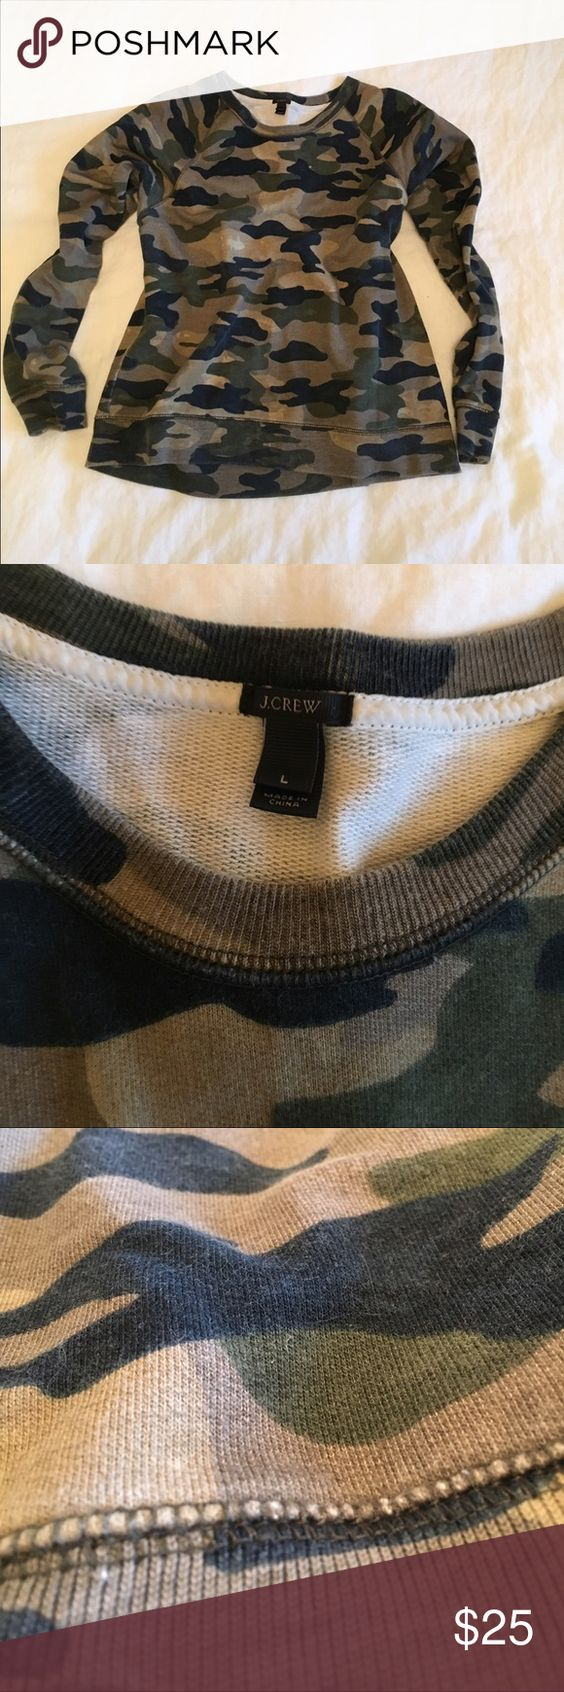 J.Crew Cotton Camo Sweatshirt So comfy & in great shape! Crew neck cotton Camo sweatshirt from J.Crew proper. No stains or visible sighs of wear. J. Crew Tops Sweatshirts & Hoodies